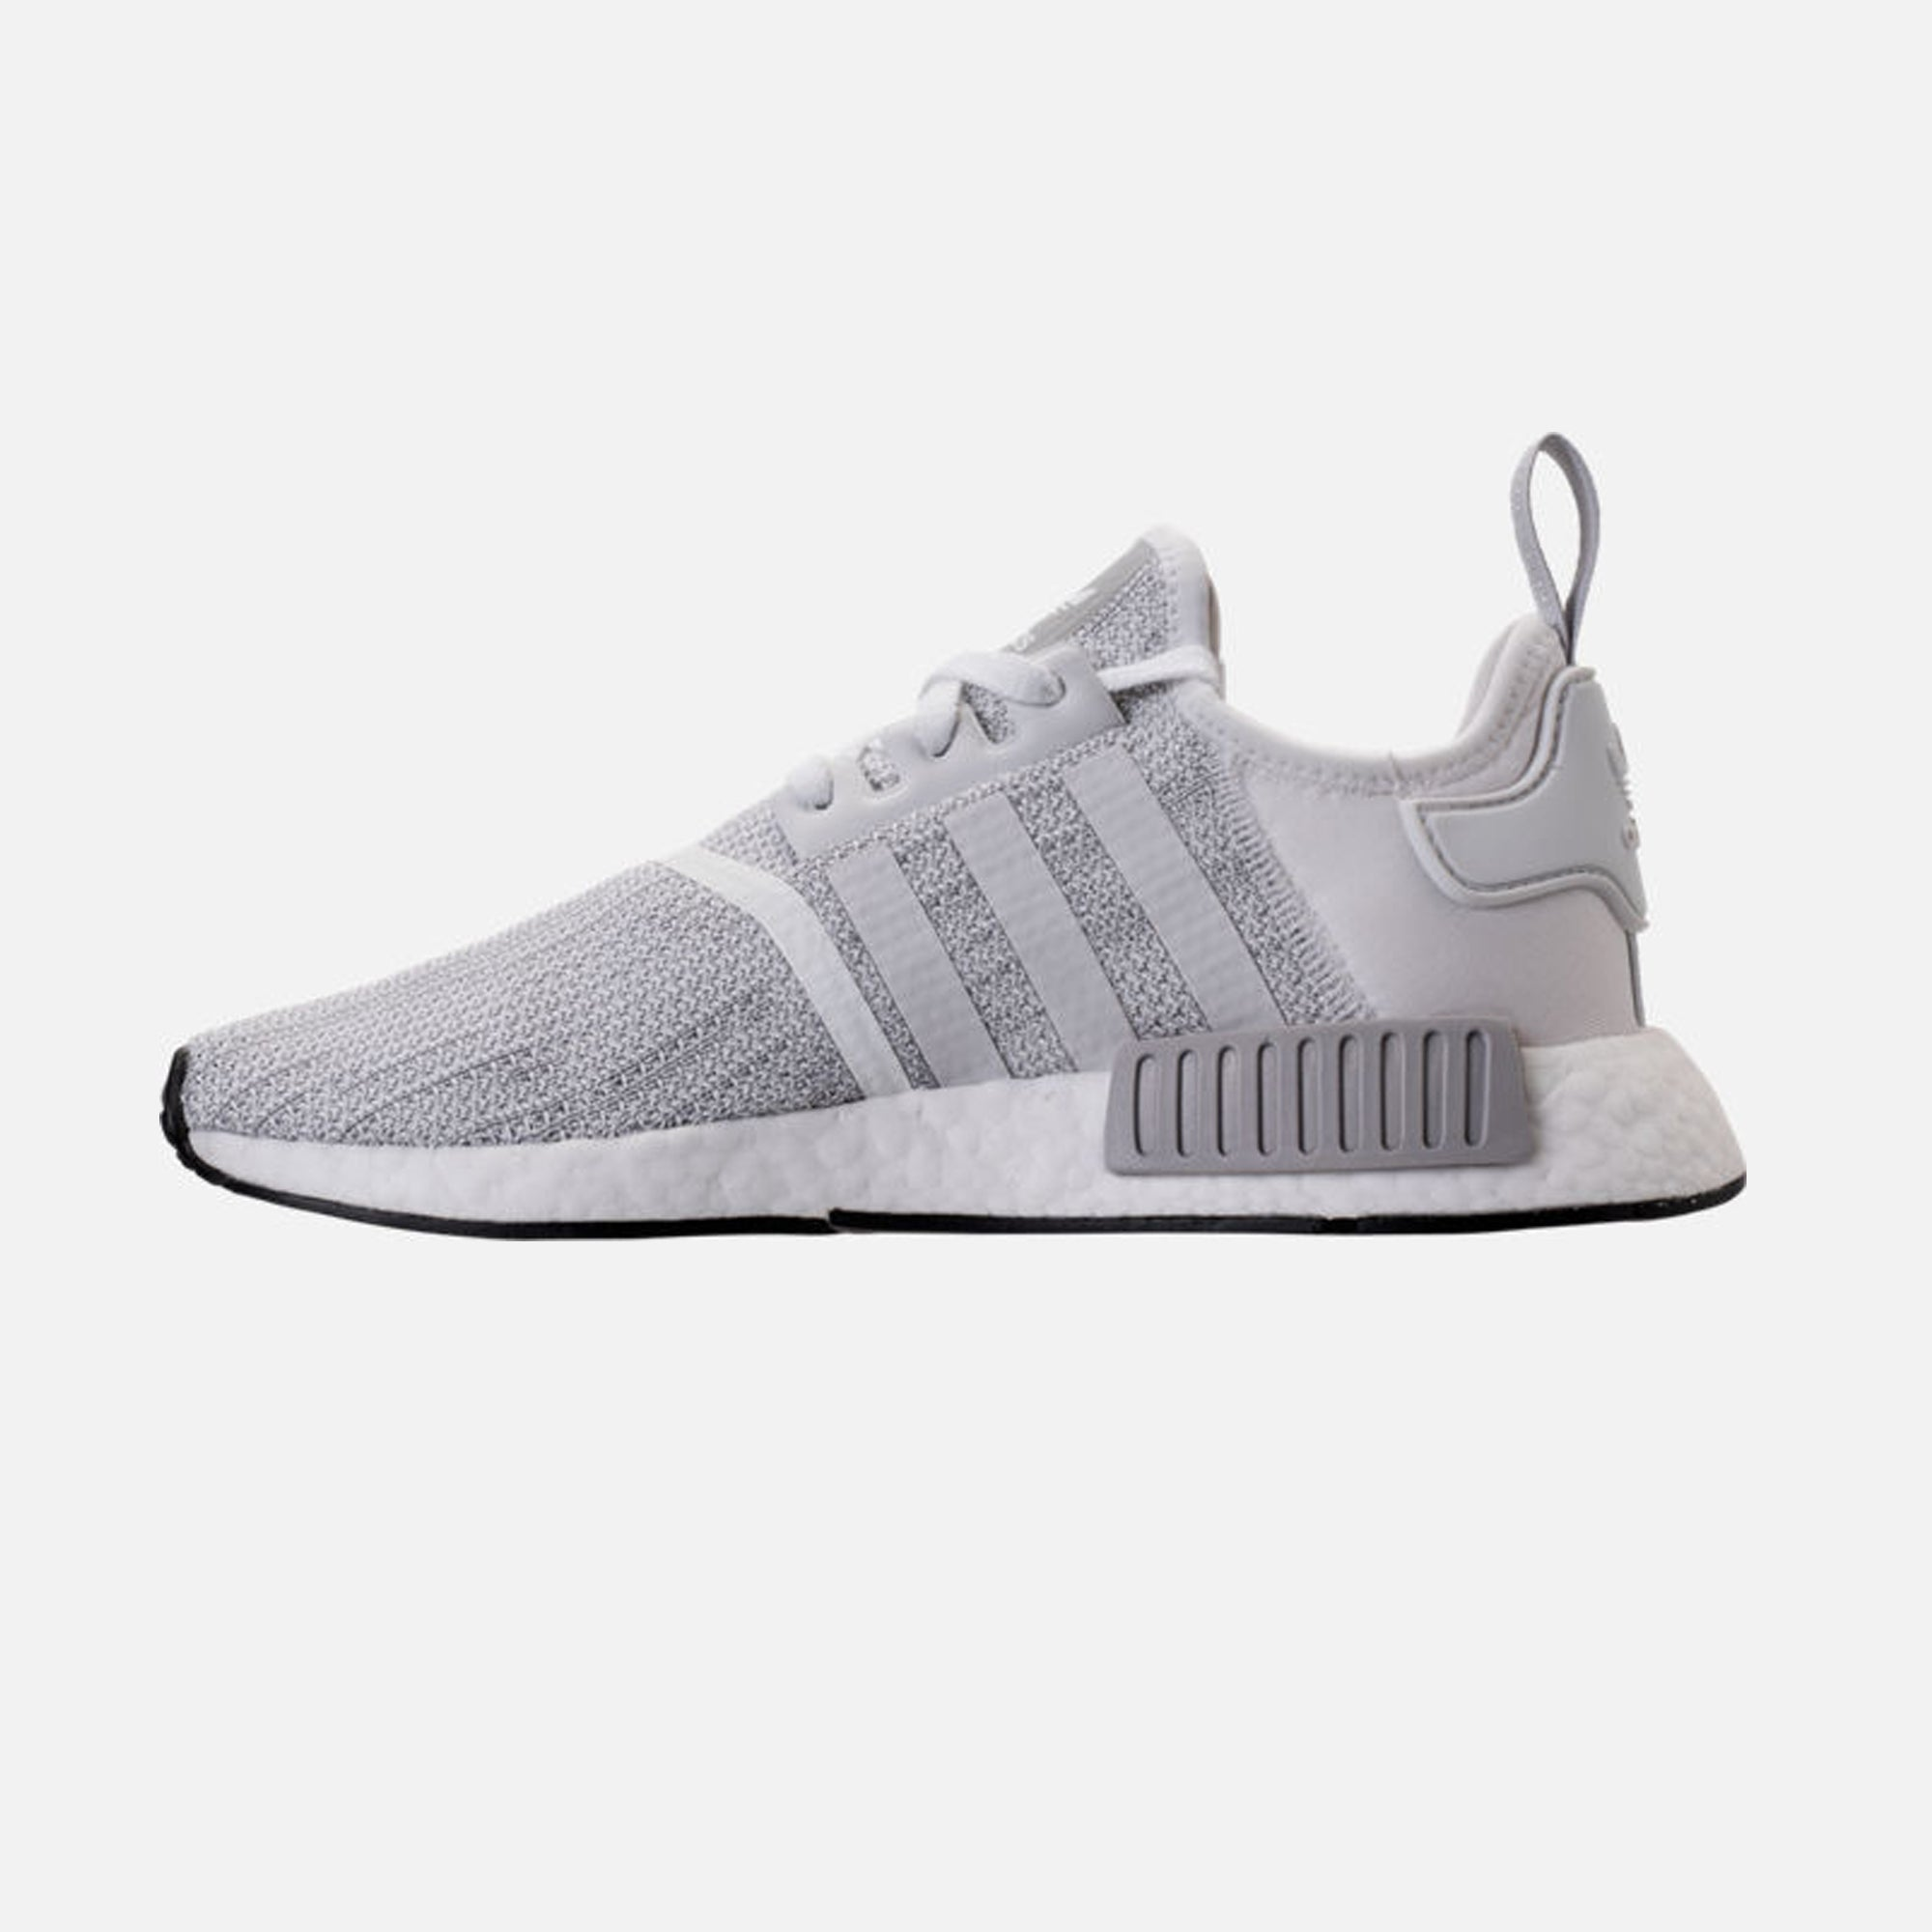 on sale 10b55 d3444 greece mens adidas nmd runner casual shoes 86150 a25a3